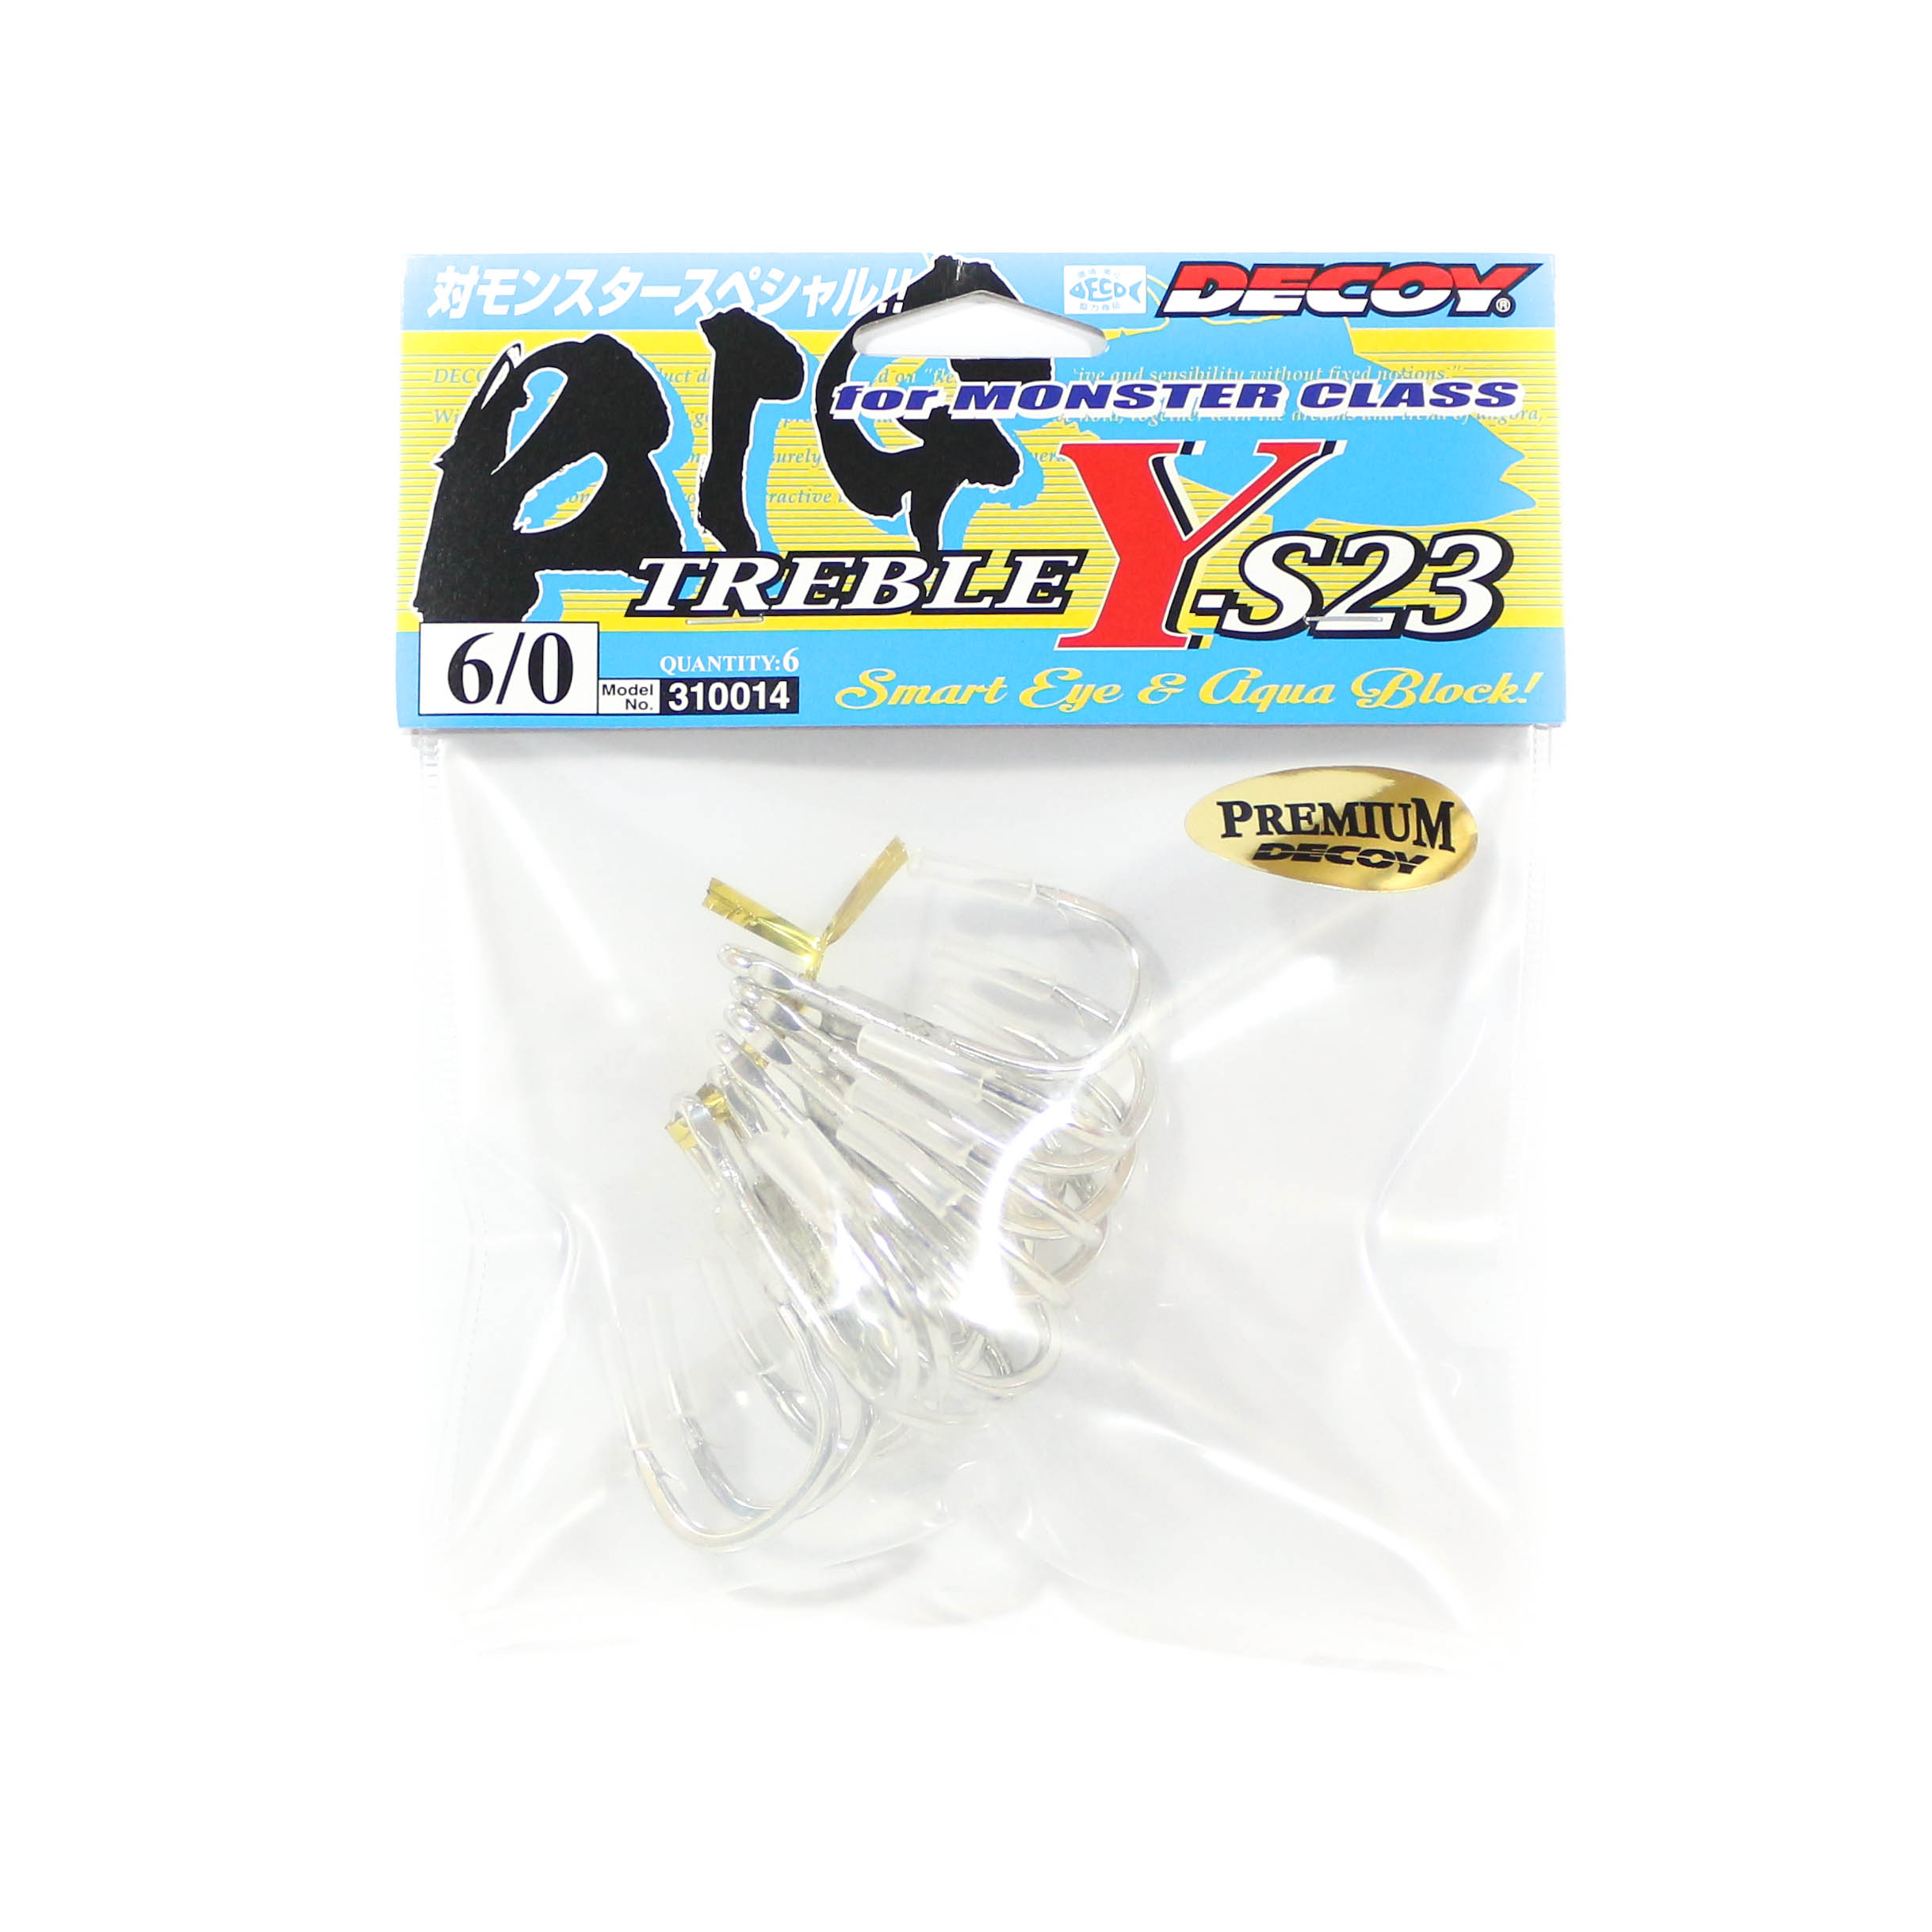 Decoy Y-S23 Treble Hook Heavy Duty Big Size 6/0 (0014)